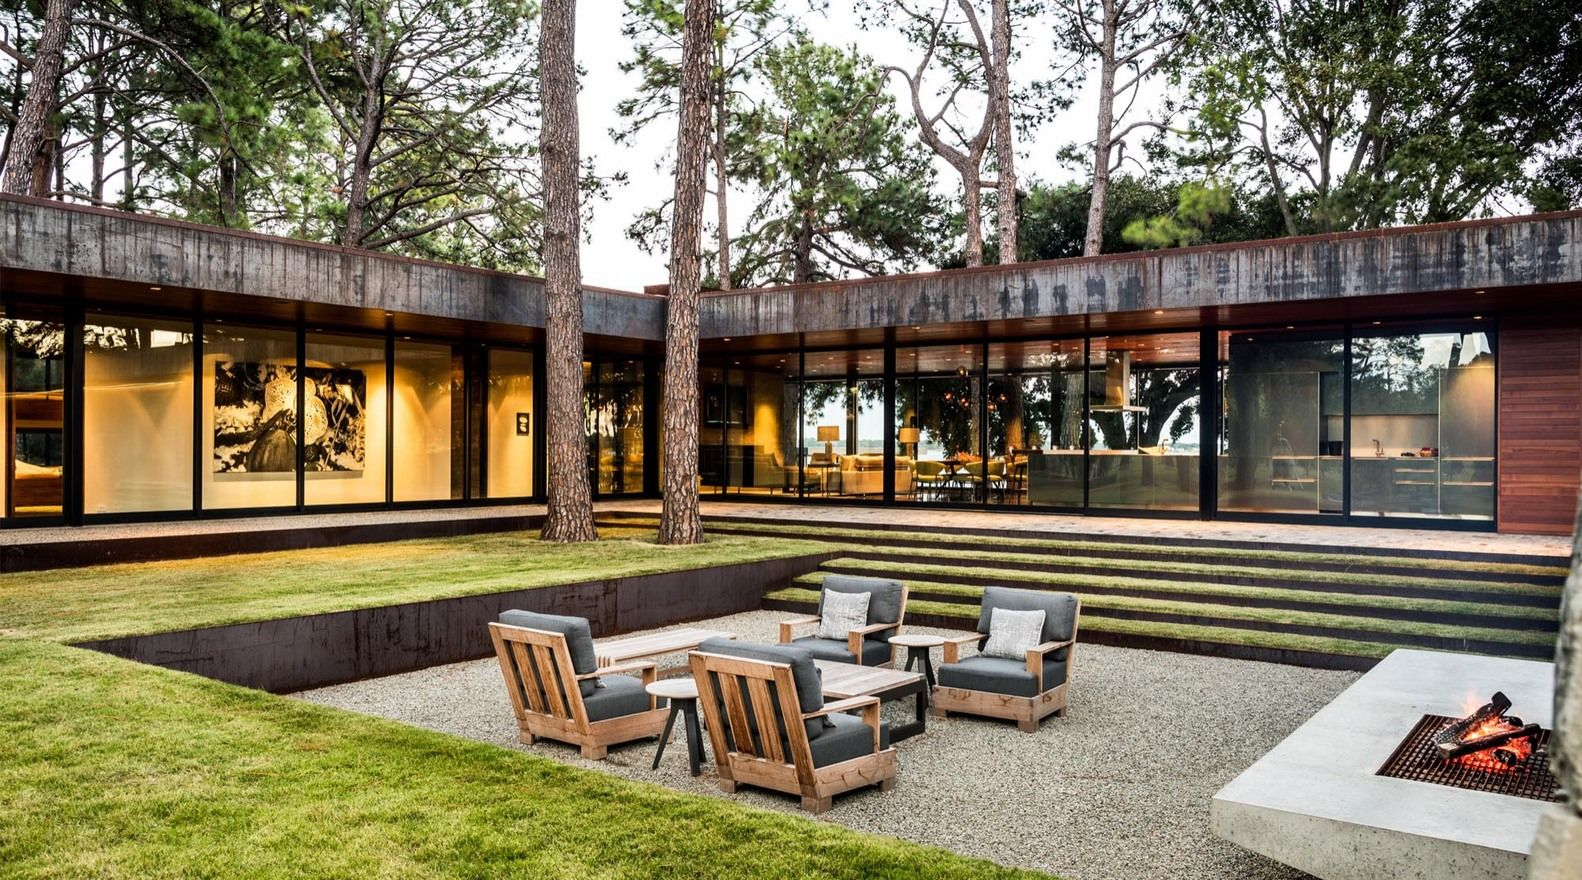 sunken gardens and backyards blend privacy and closeness to